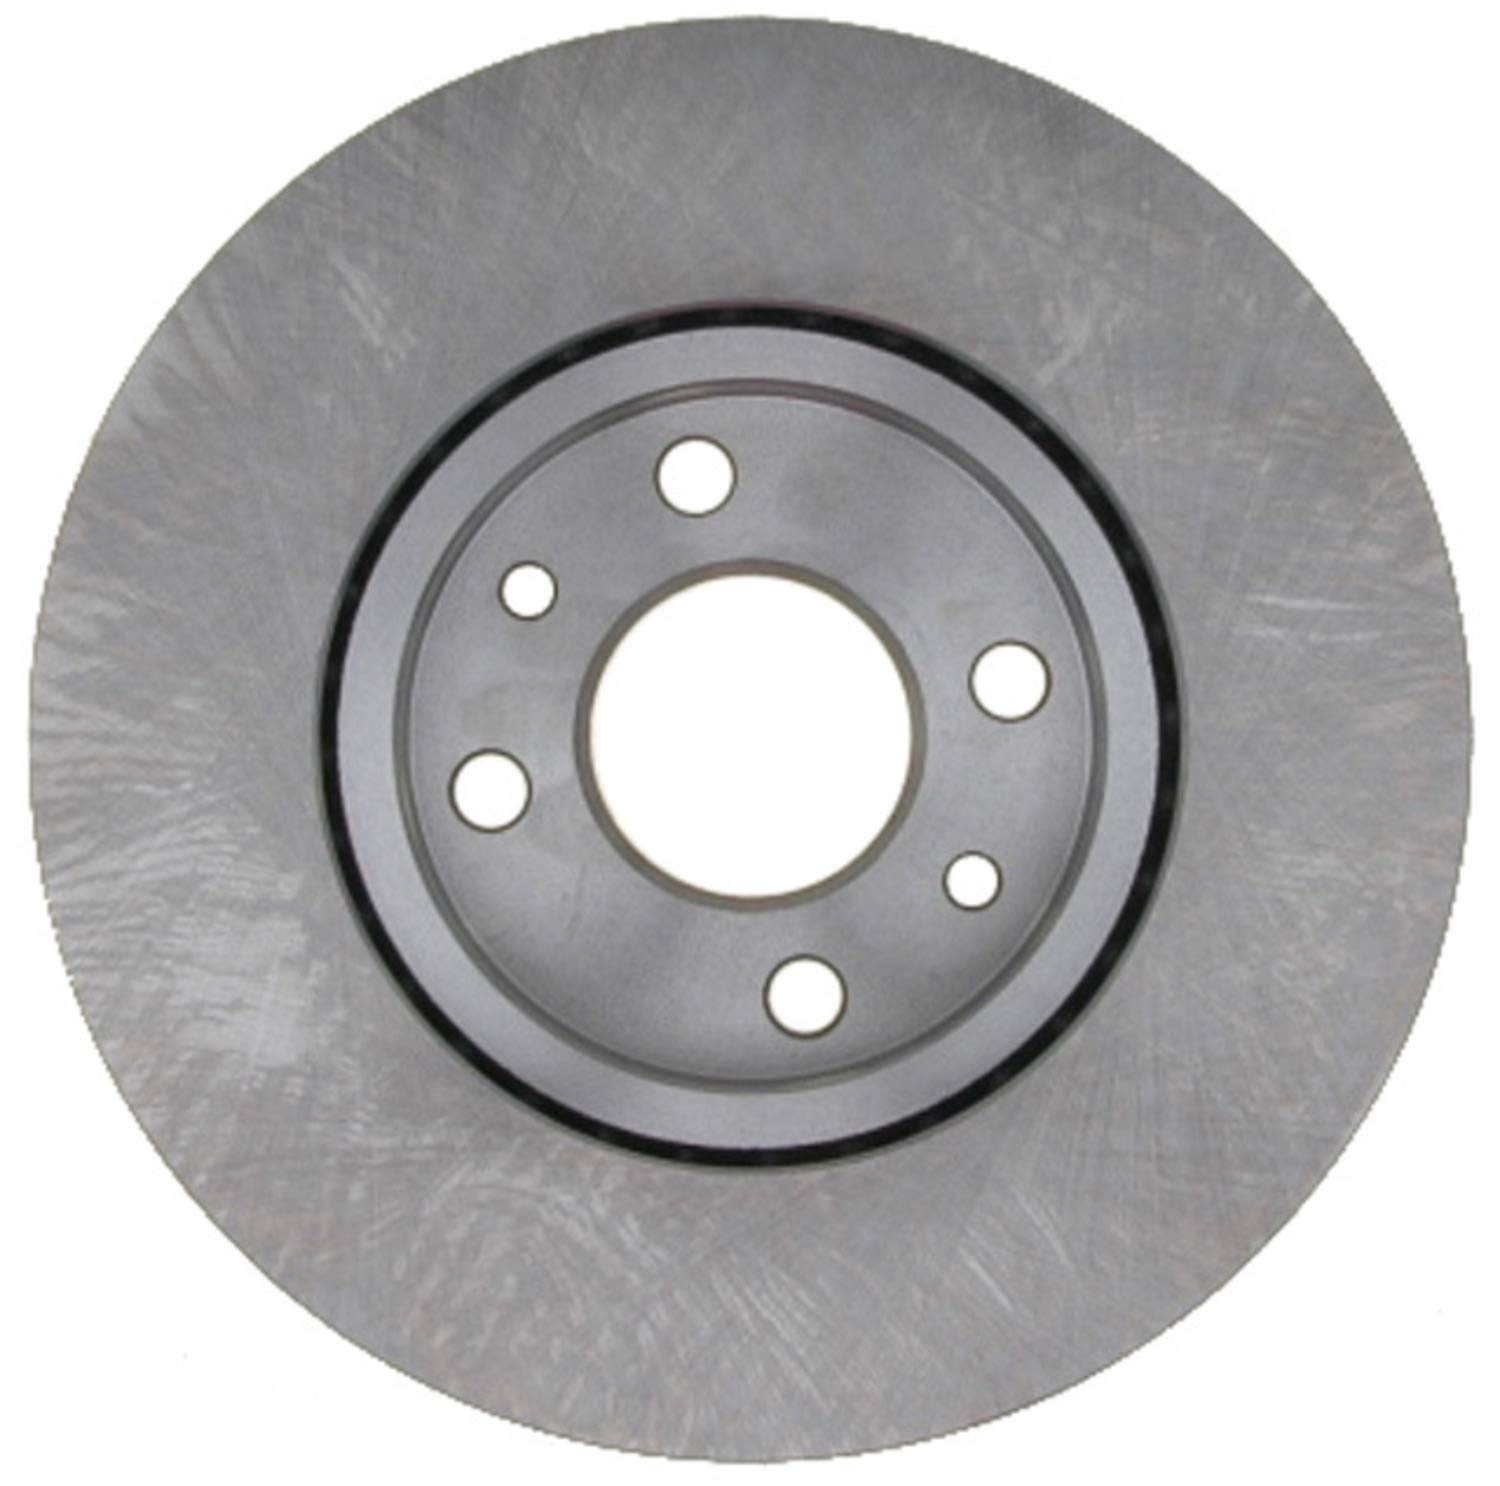 Magneti Marelli by Mopar 2AMV4237AA Front Disc Brake Rotor